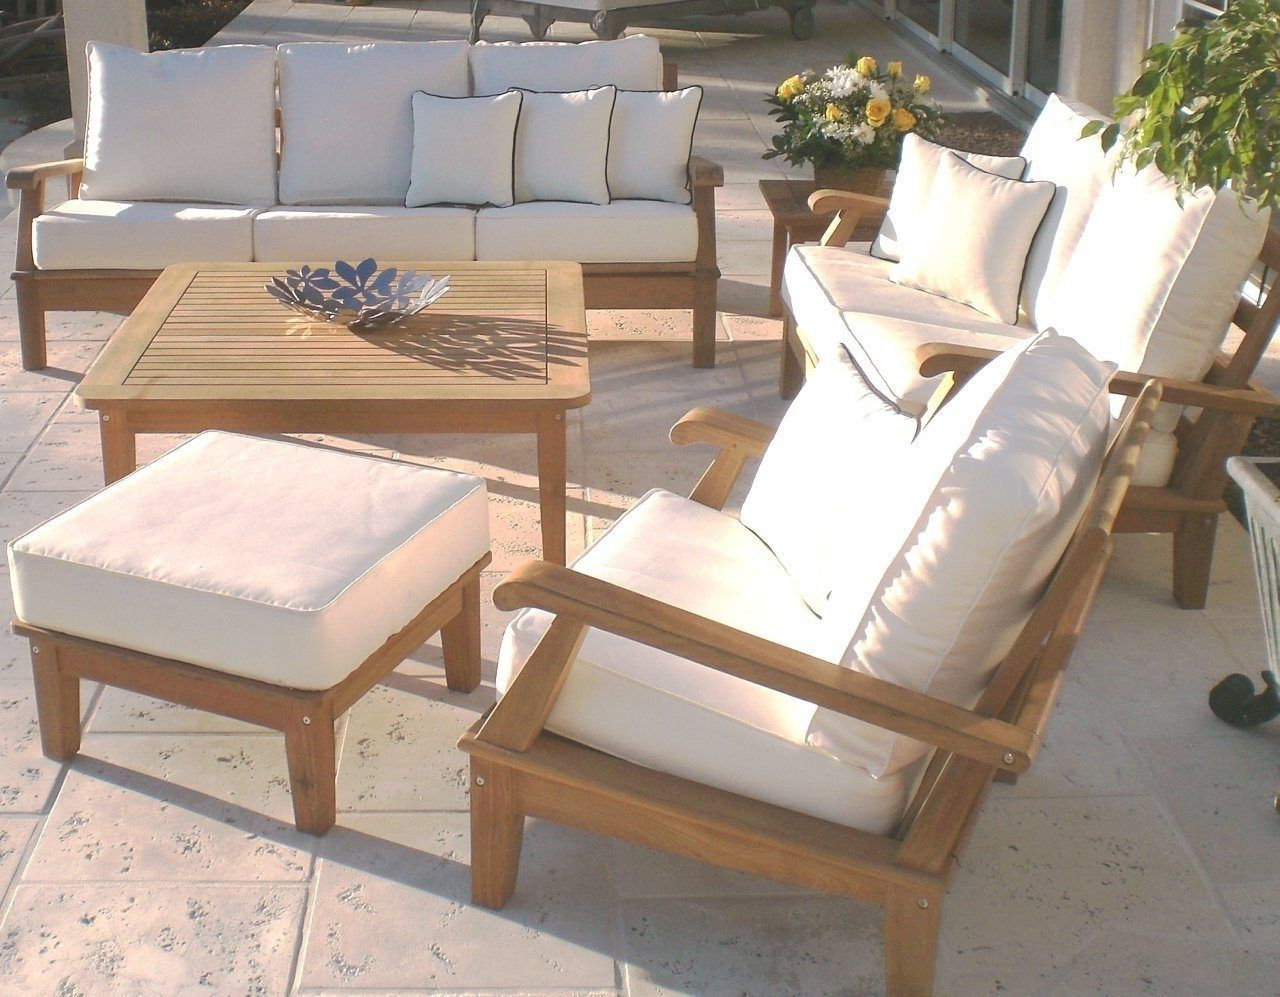 Cool Fresh Smith And Hawken Teak Patio Furniture 79 With Additional Small Home Decoration Id Teak Patio Furniture Patio Dining Furniture Teak Outdoor Furniture